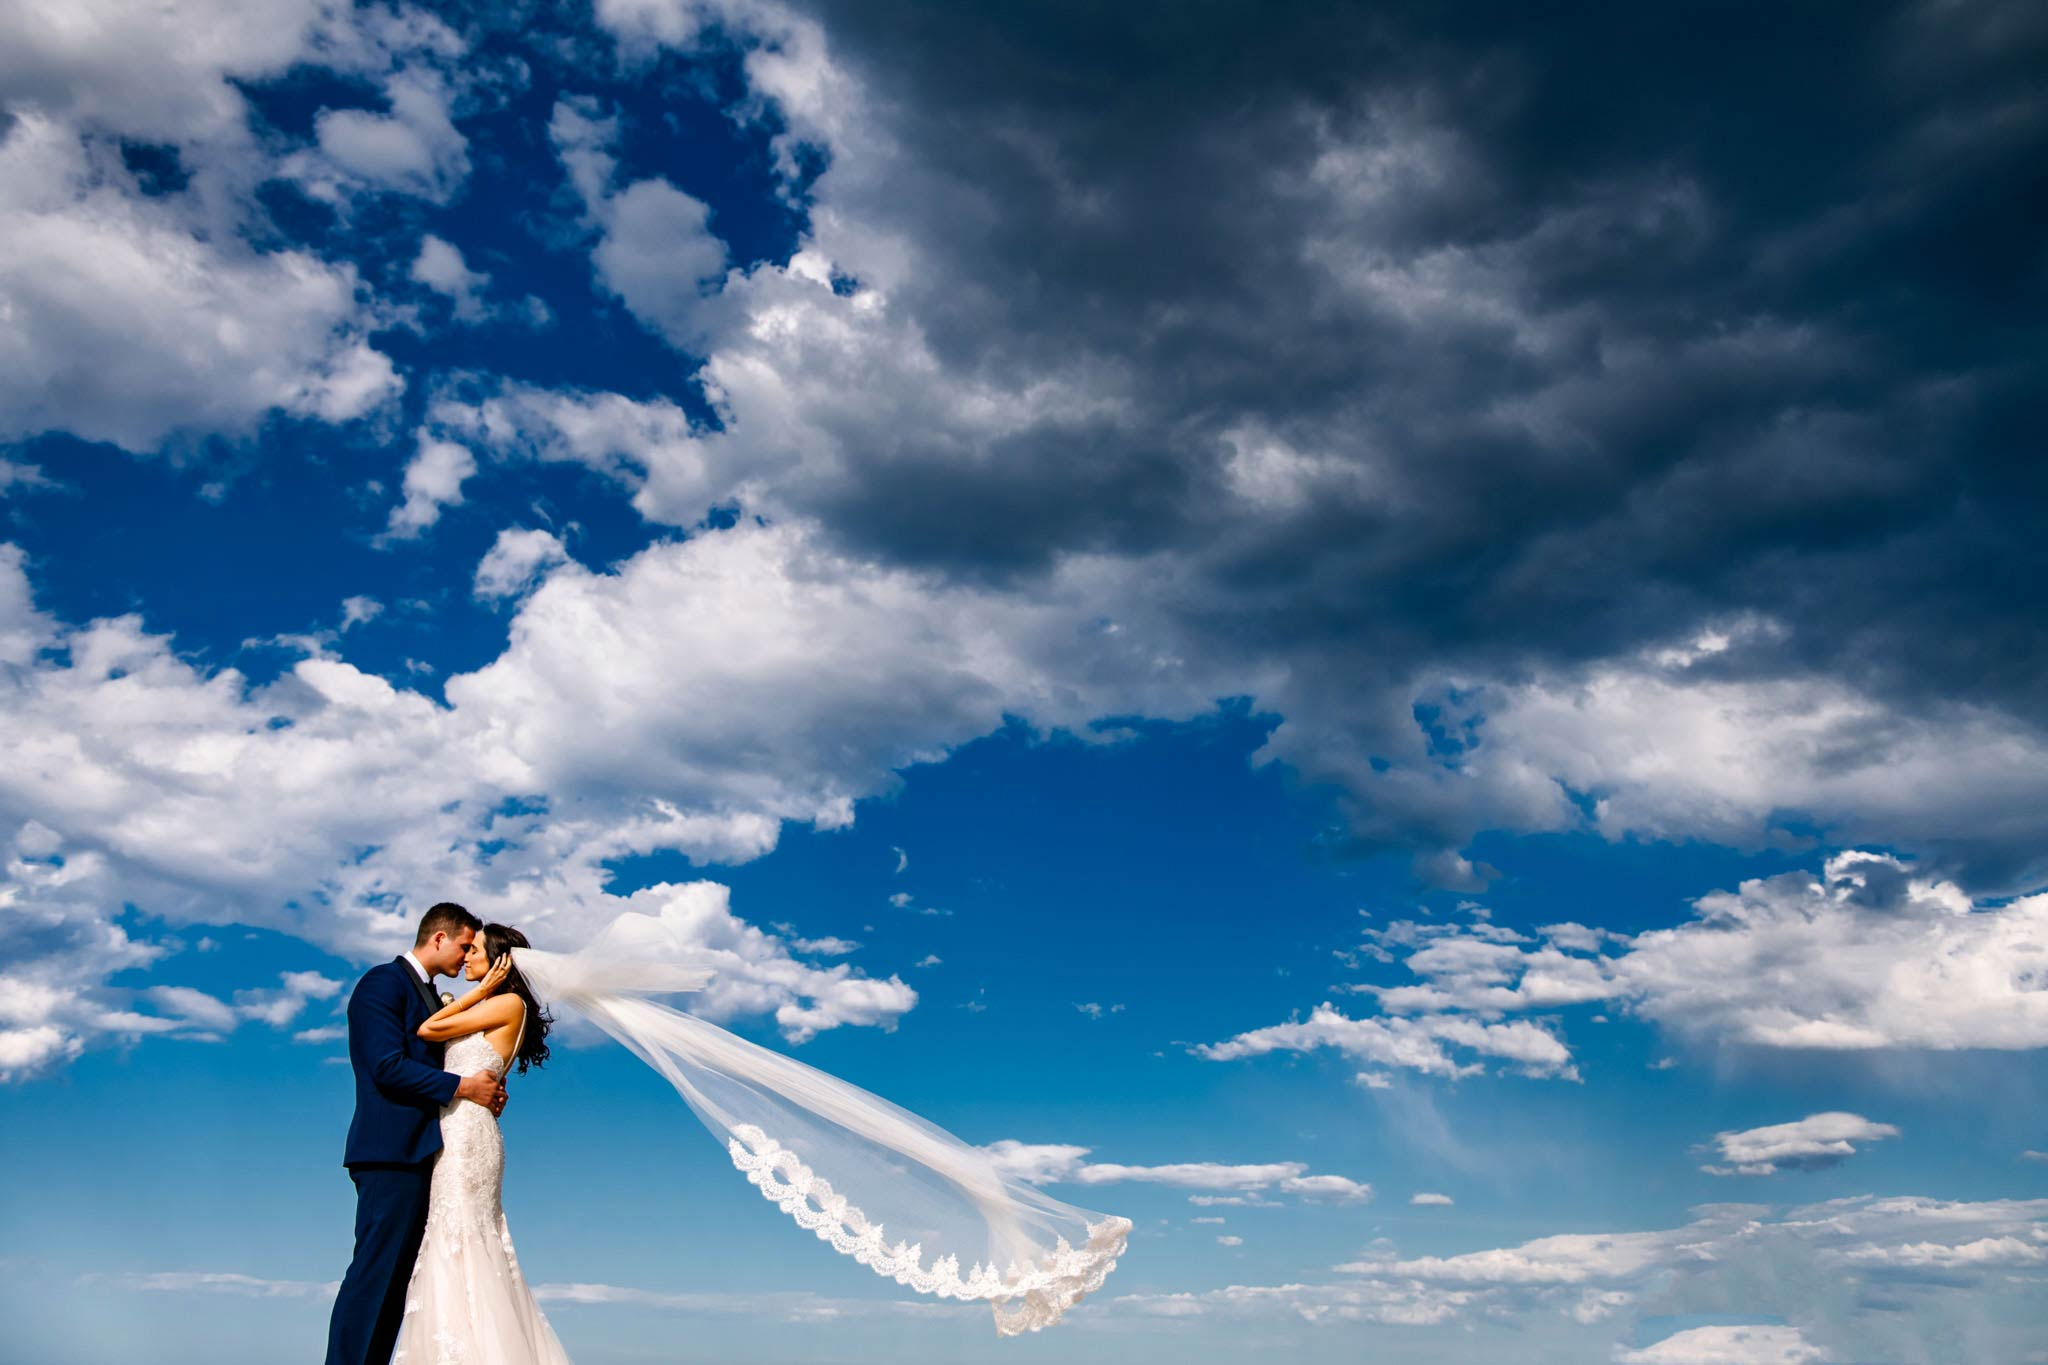 Newlyweds embrace with view of sky behind them as the bride's veil floats in the breeze